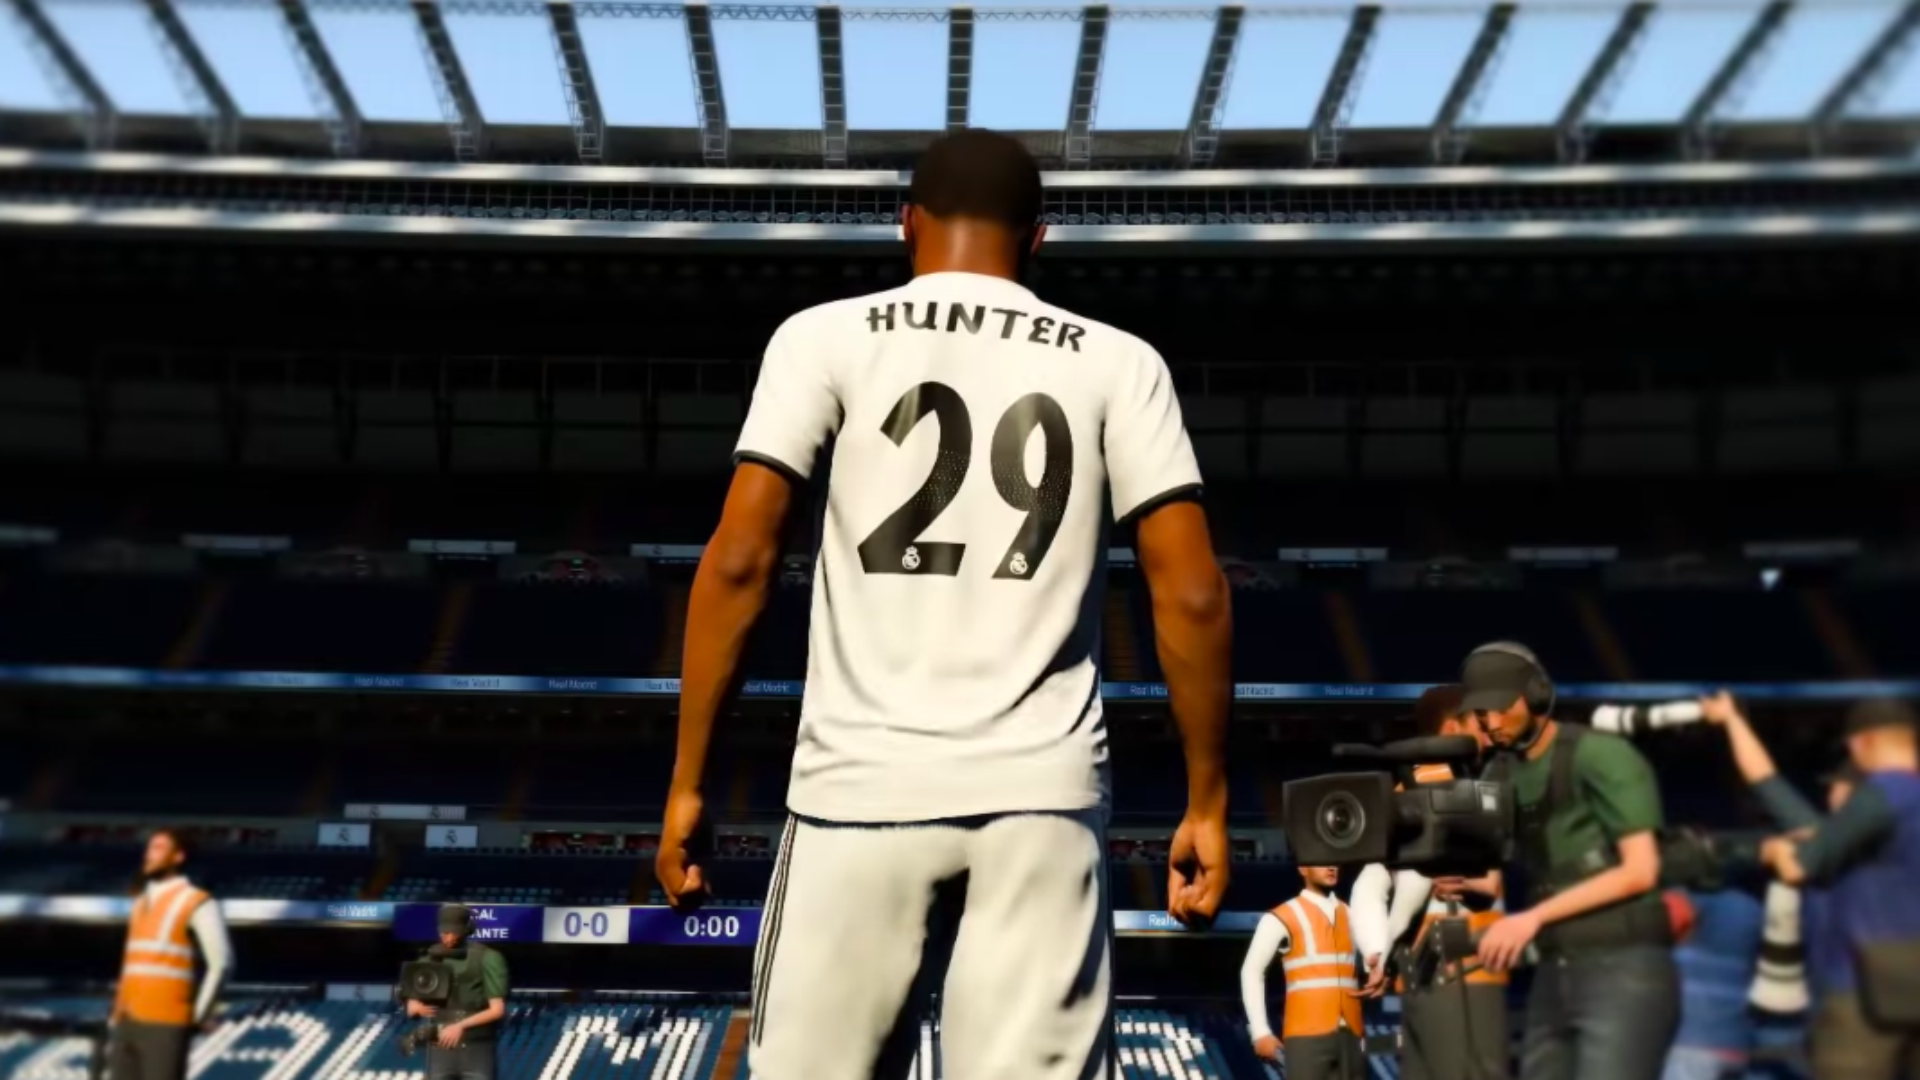 FIFA 19 The Journey: Alex Hunter's story so far & what to